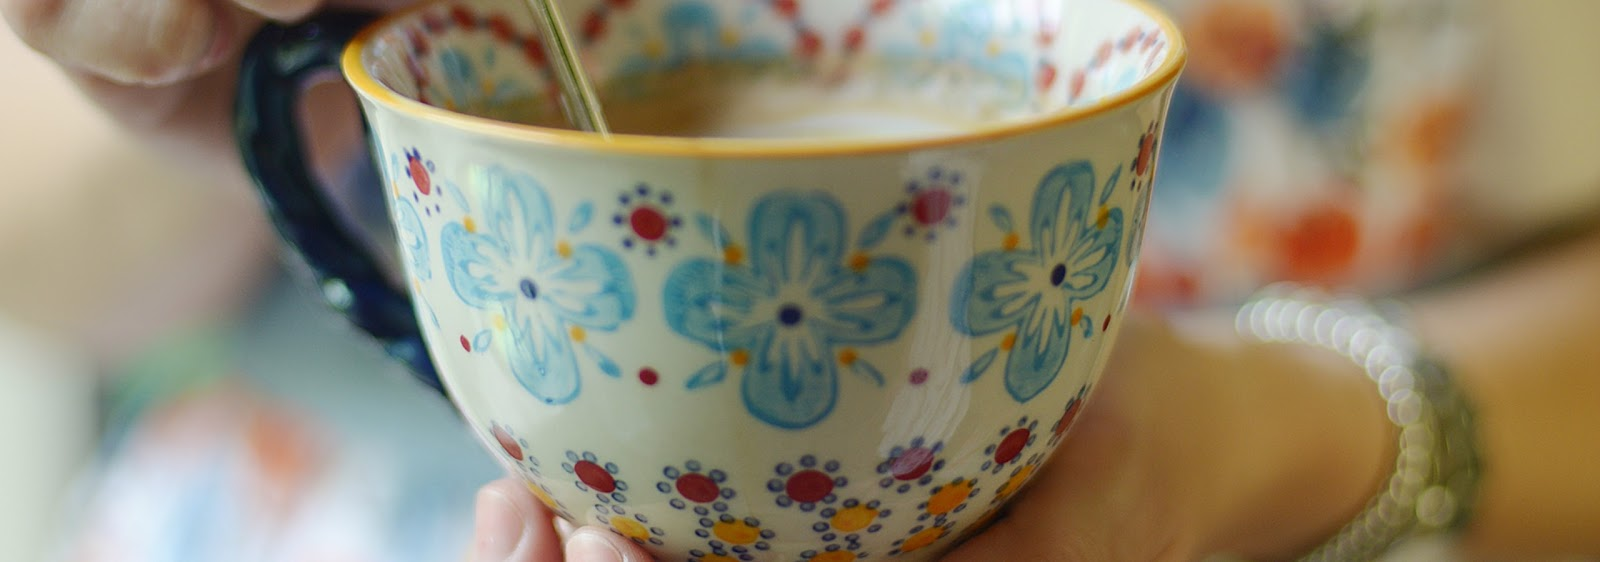 tea in a flowery mug, cupped in a pair of hands. A flowery dress in the background.